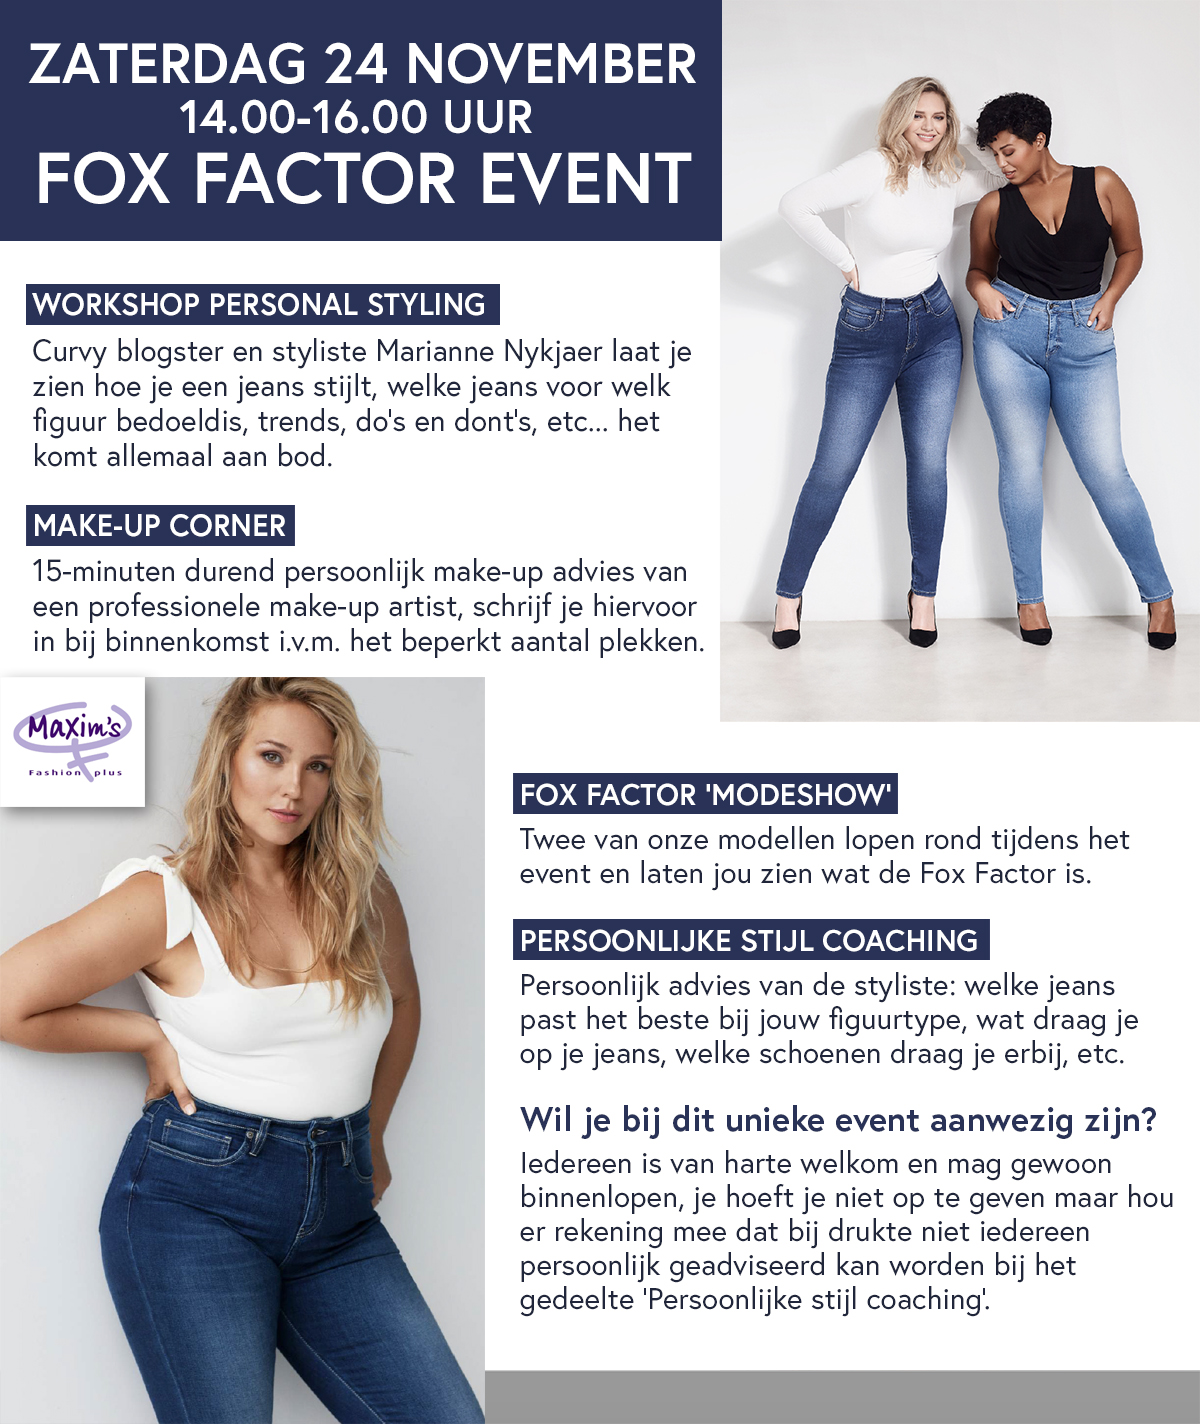 Fox Factor event bij Maxims